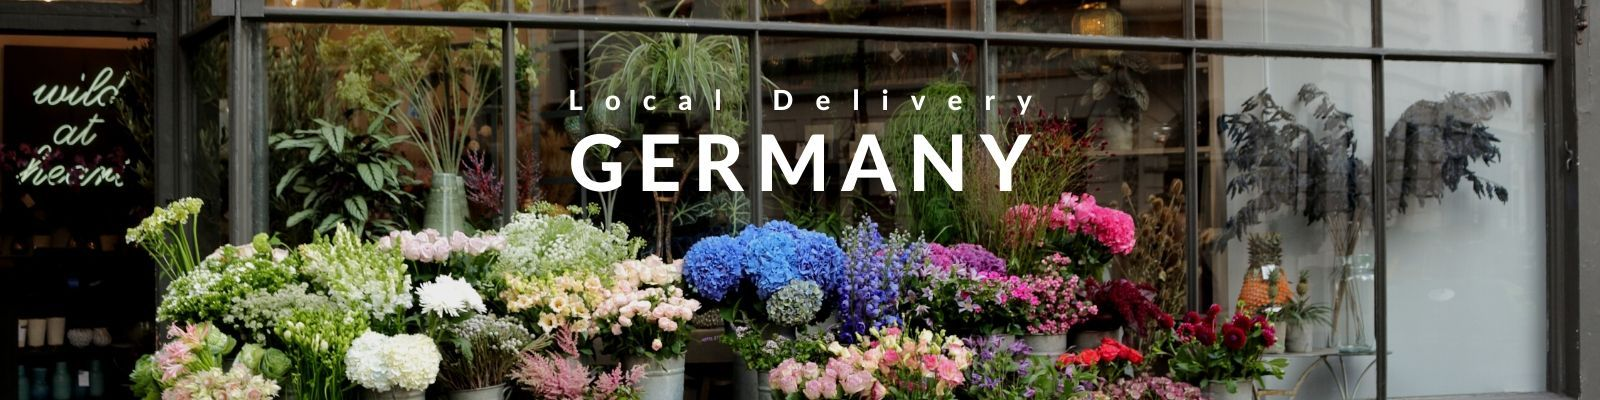 Flower Delivery Germany - Send Flowers to Germany